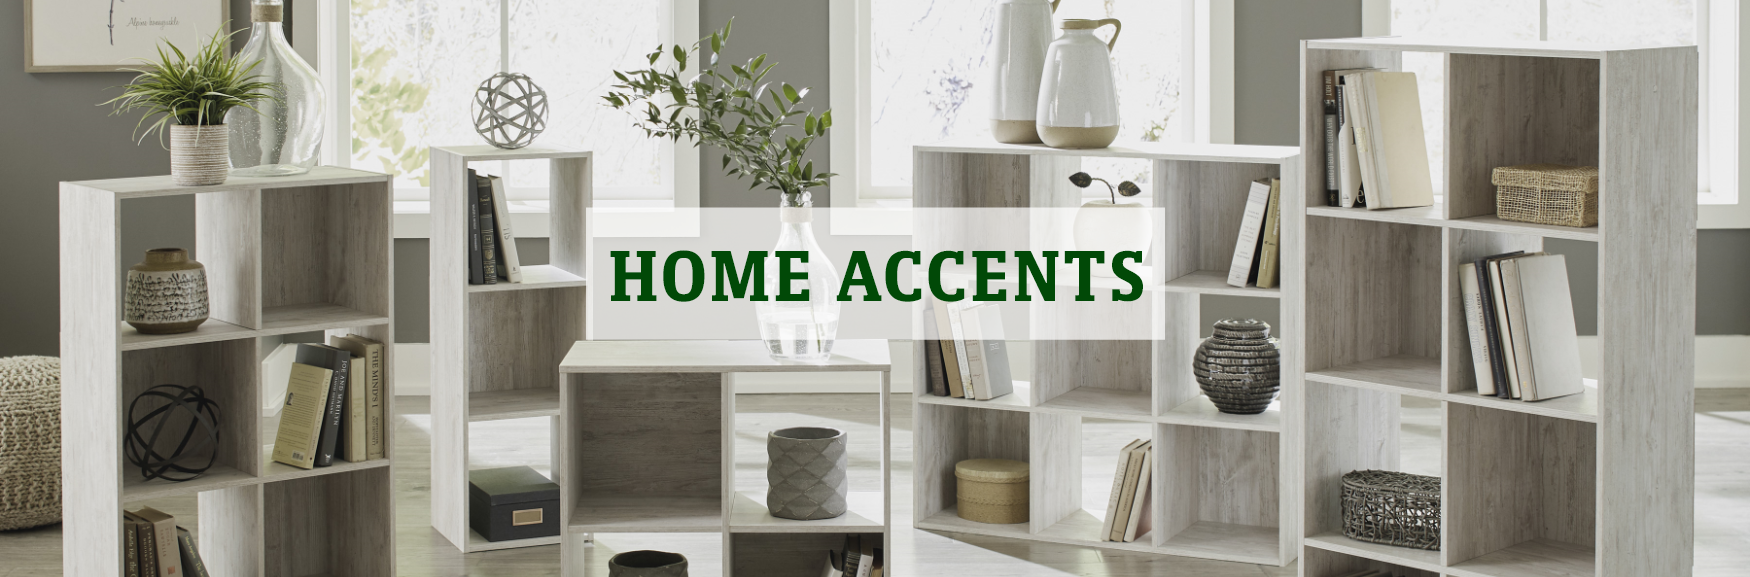 Home Accents Product